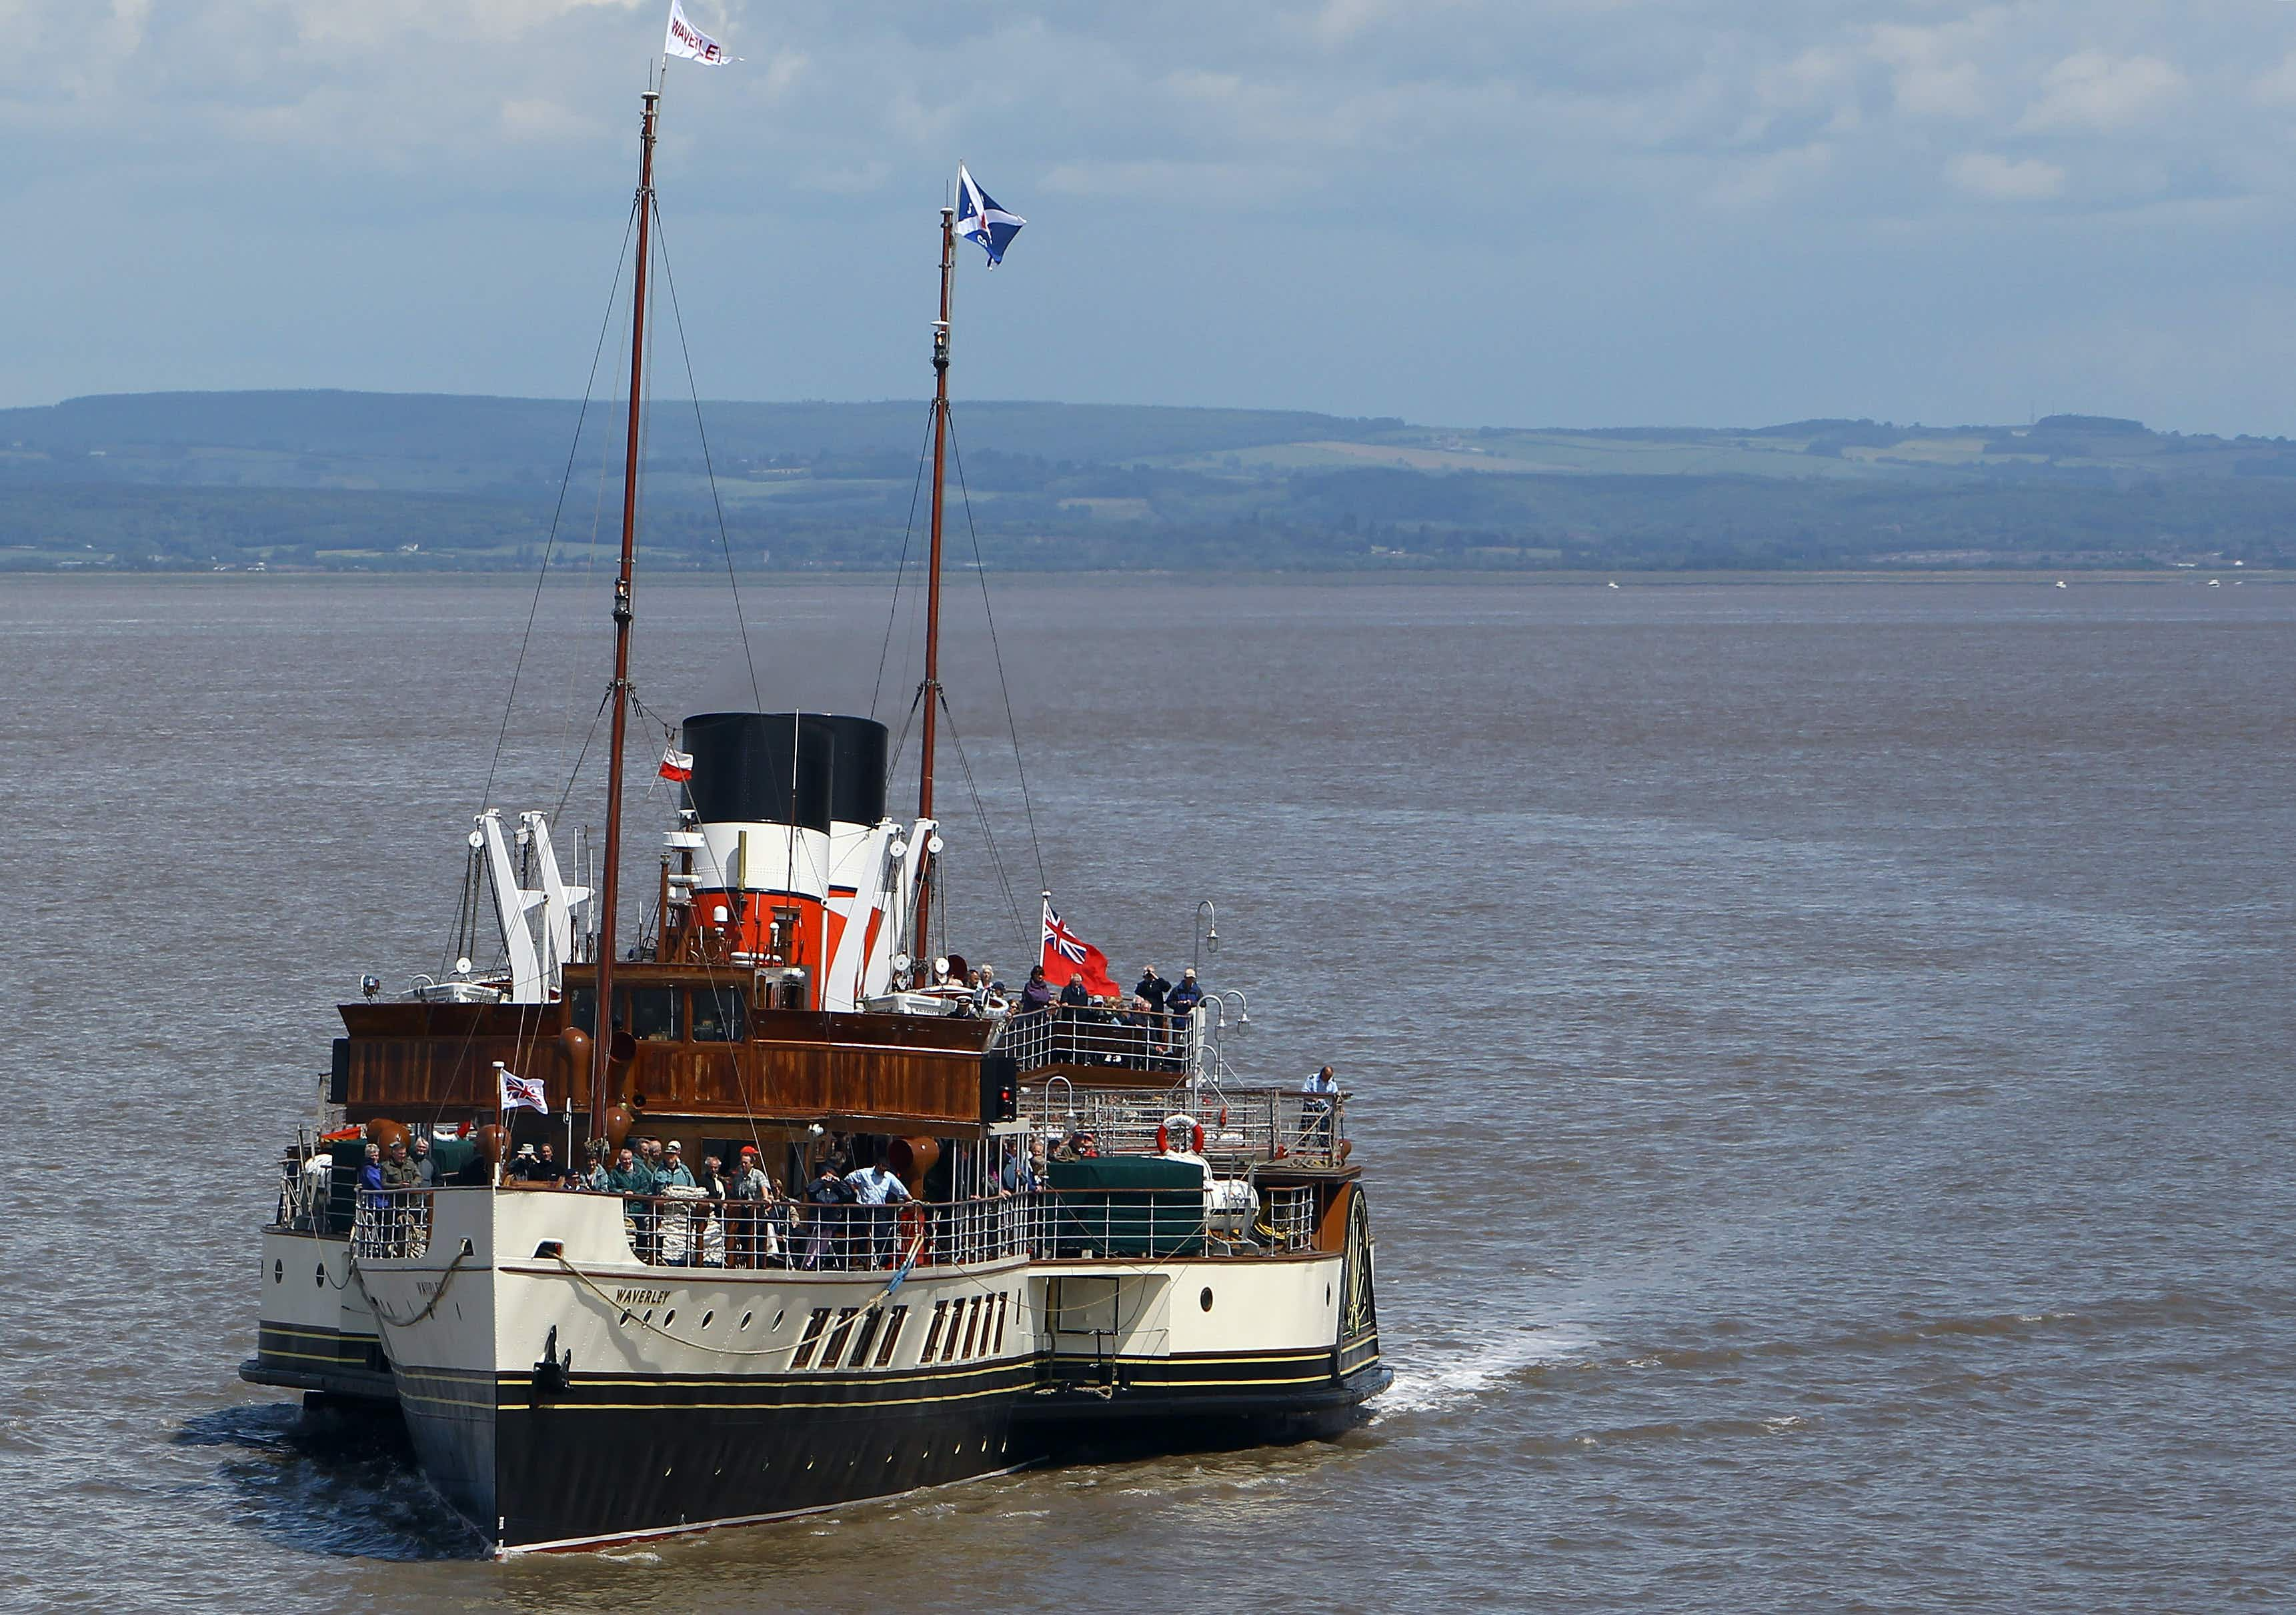 The world's last sea-going paddle steamer celebrates 70th anniversary recreating maiden voyage